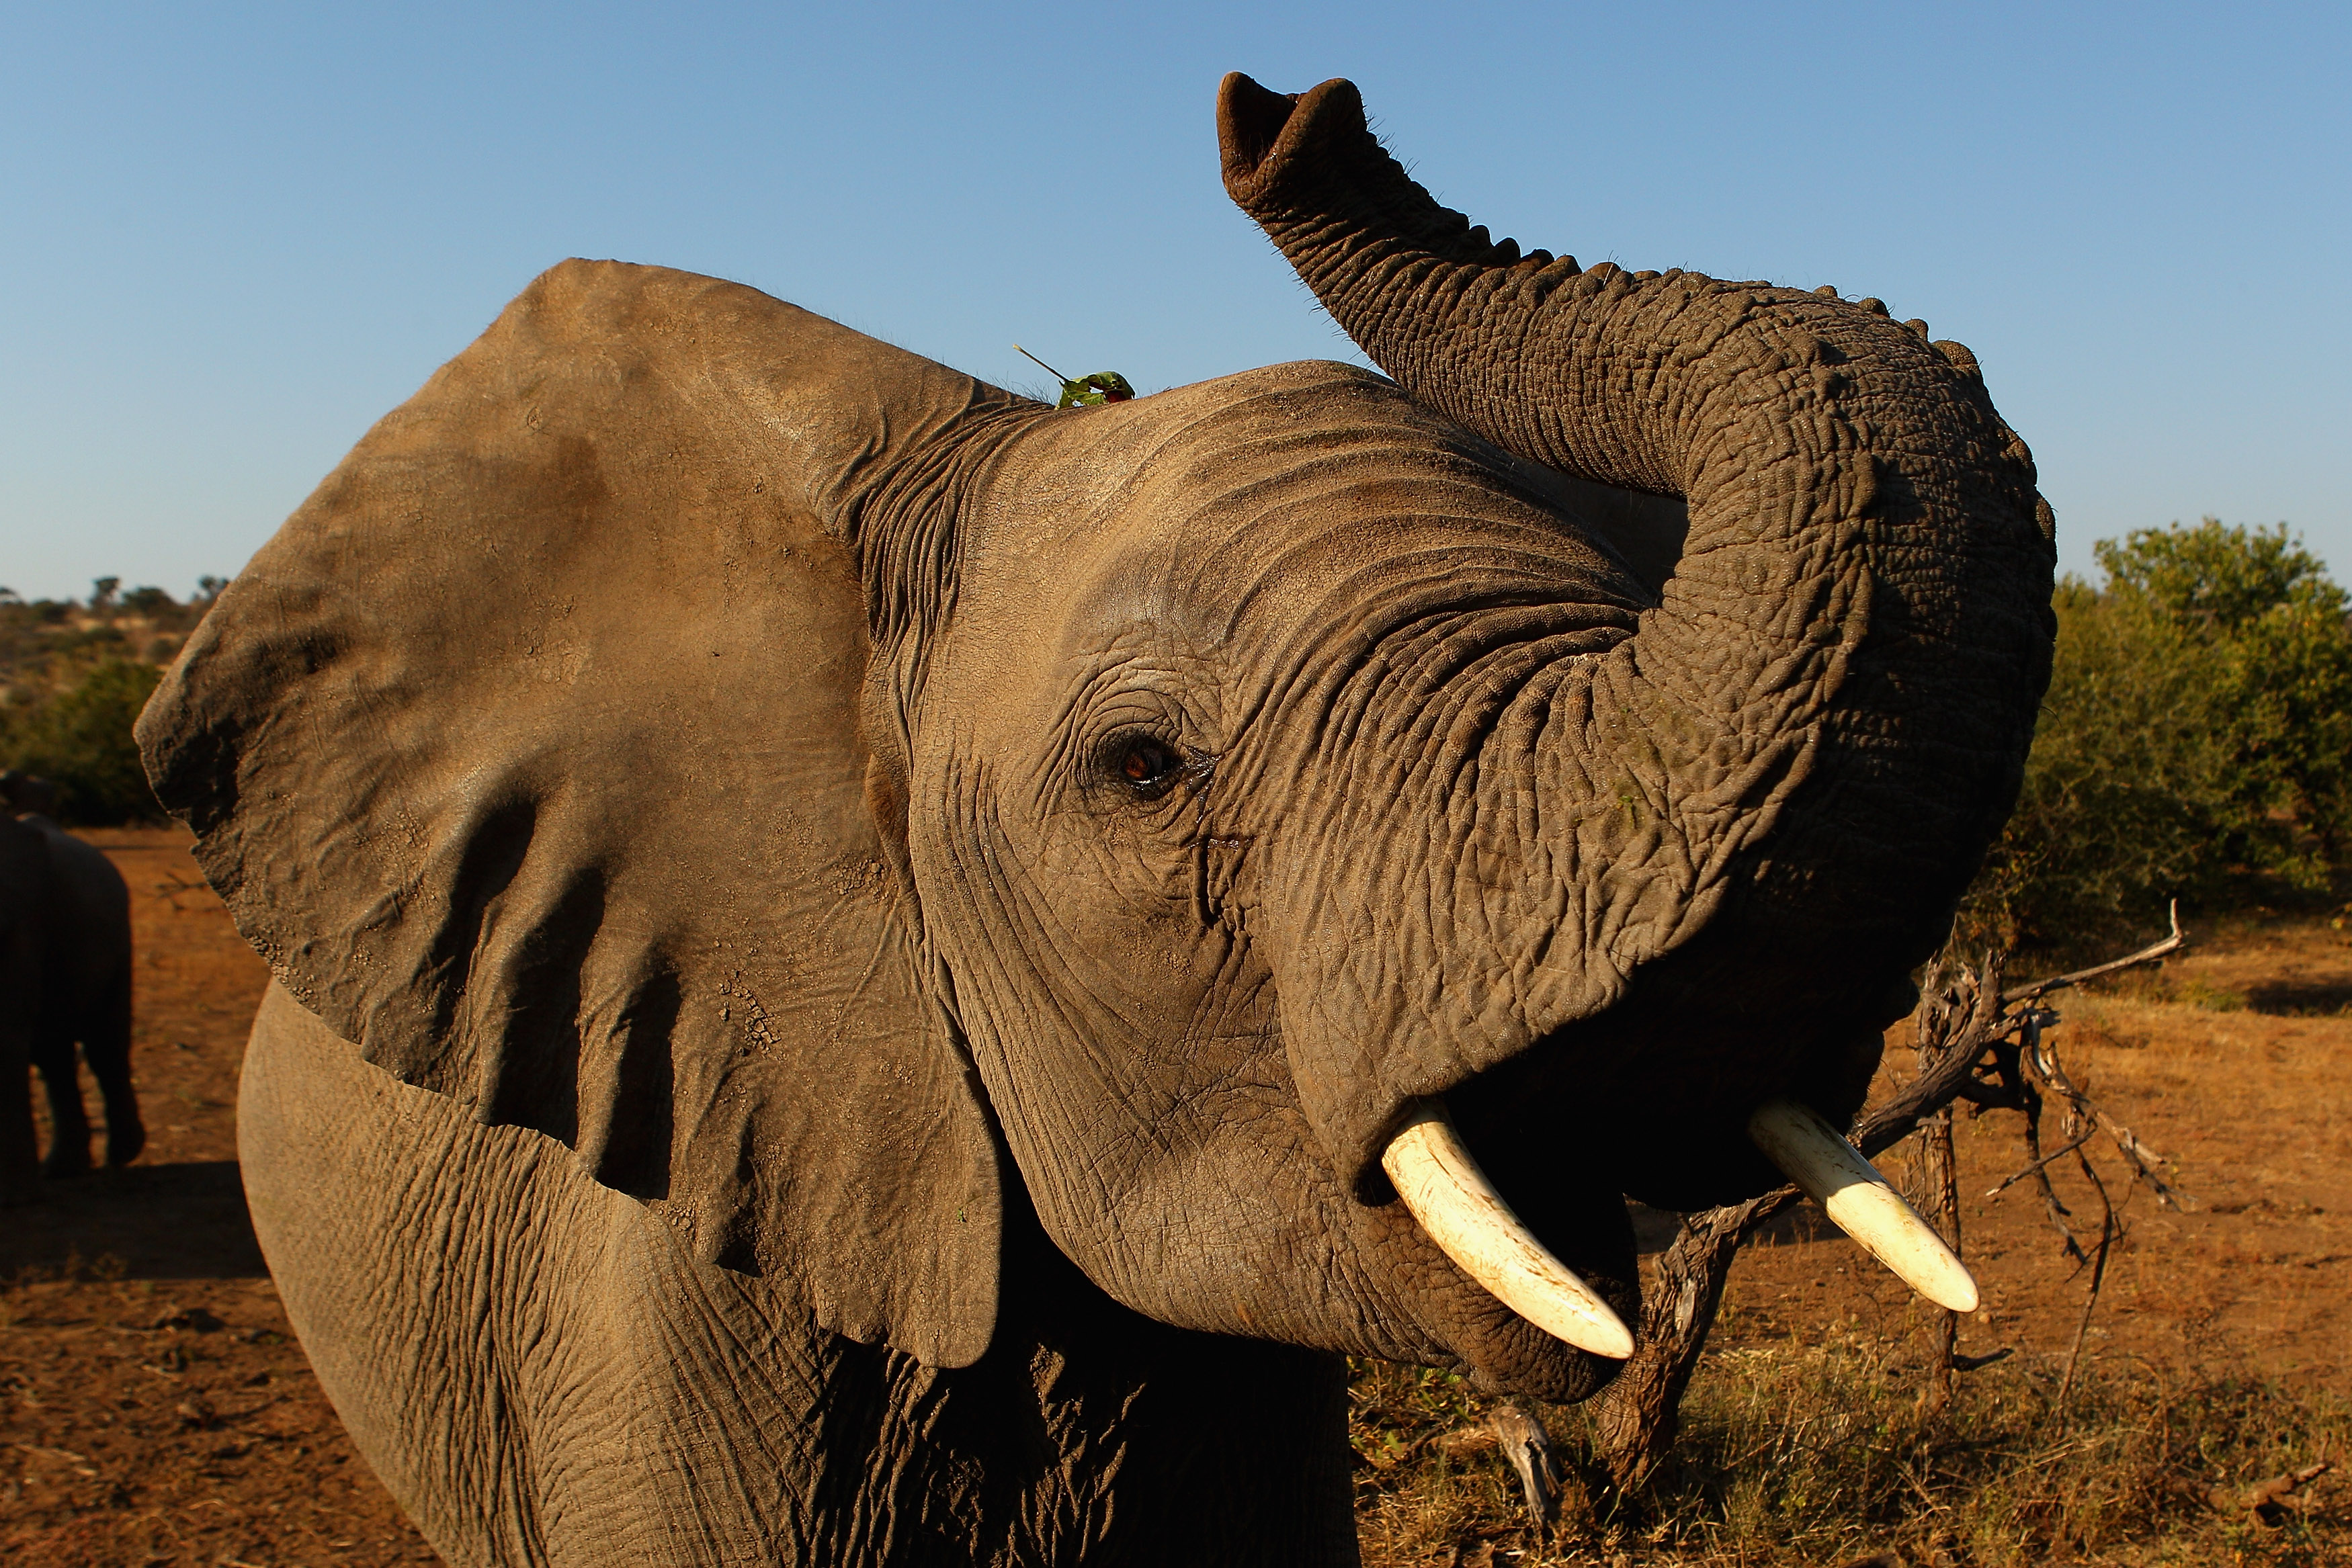 An elephant at the Mashatu game reserve in Mapungubwe, Botswana on July 26, 2010.